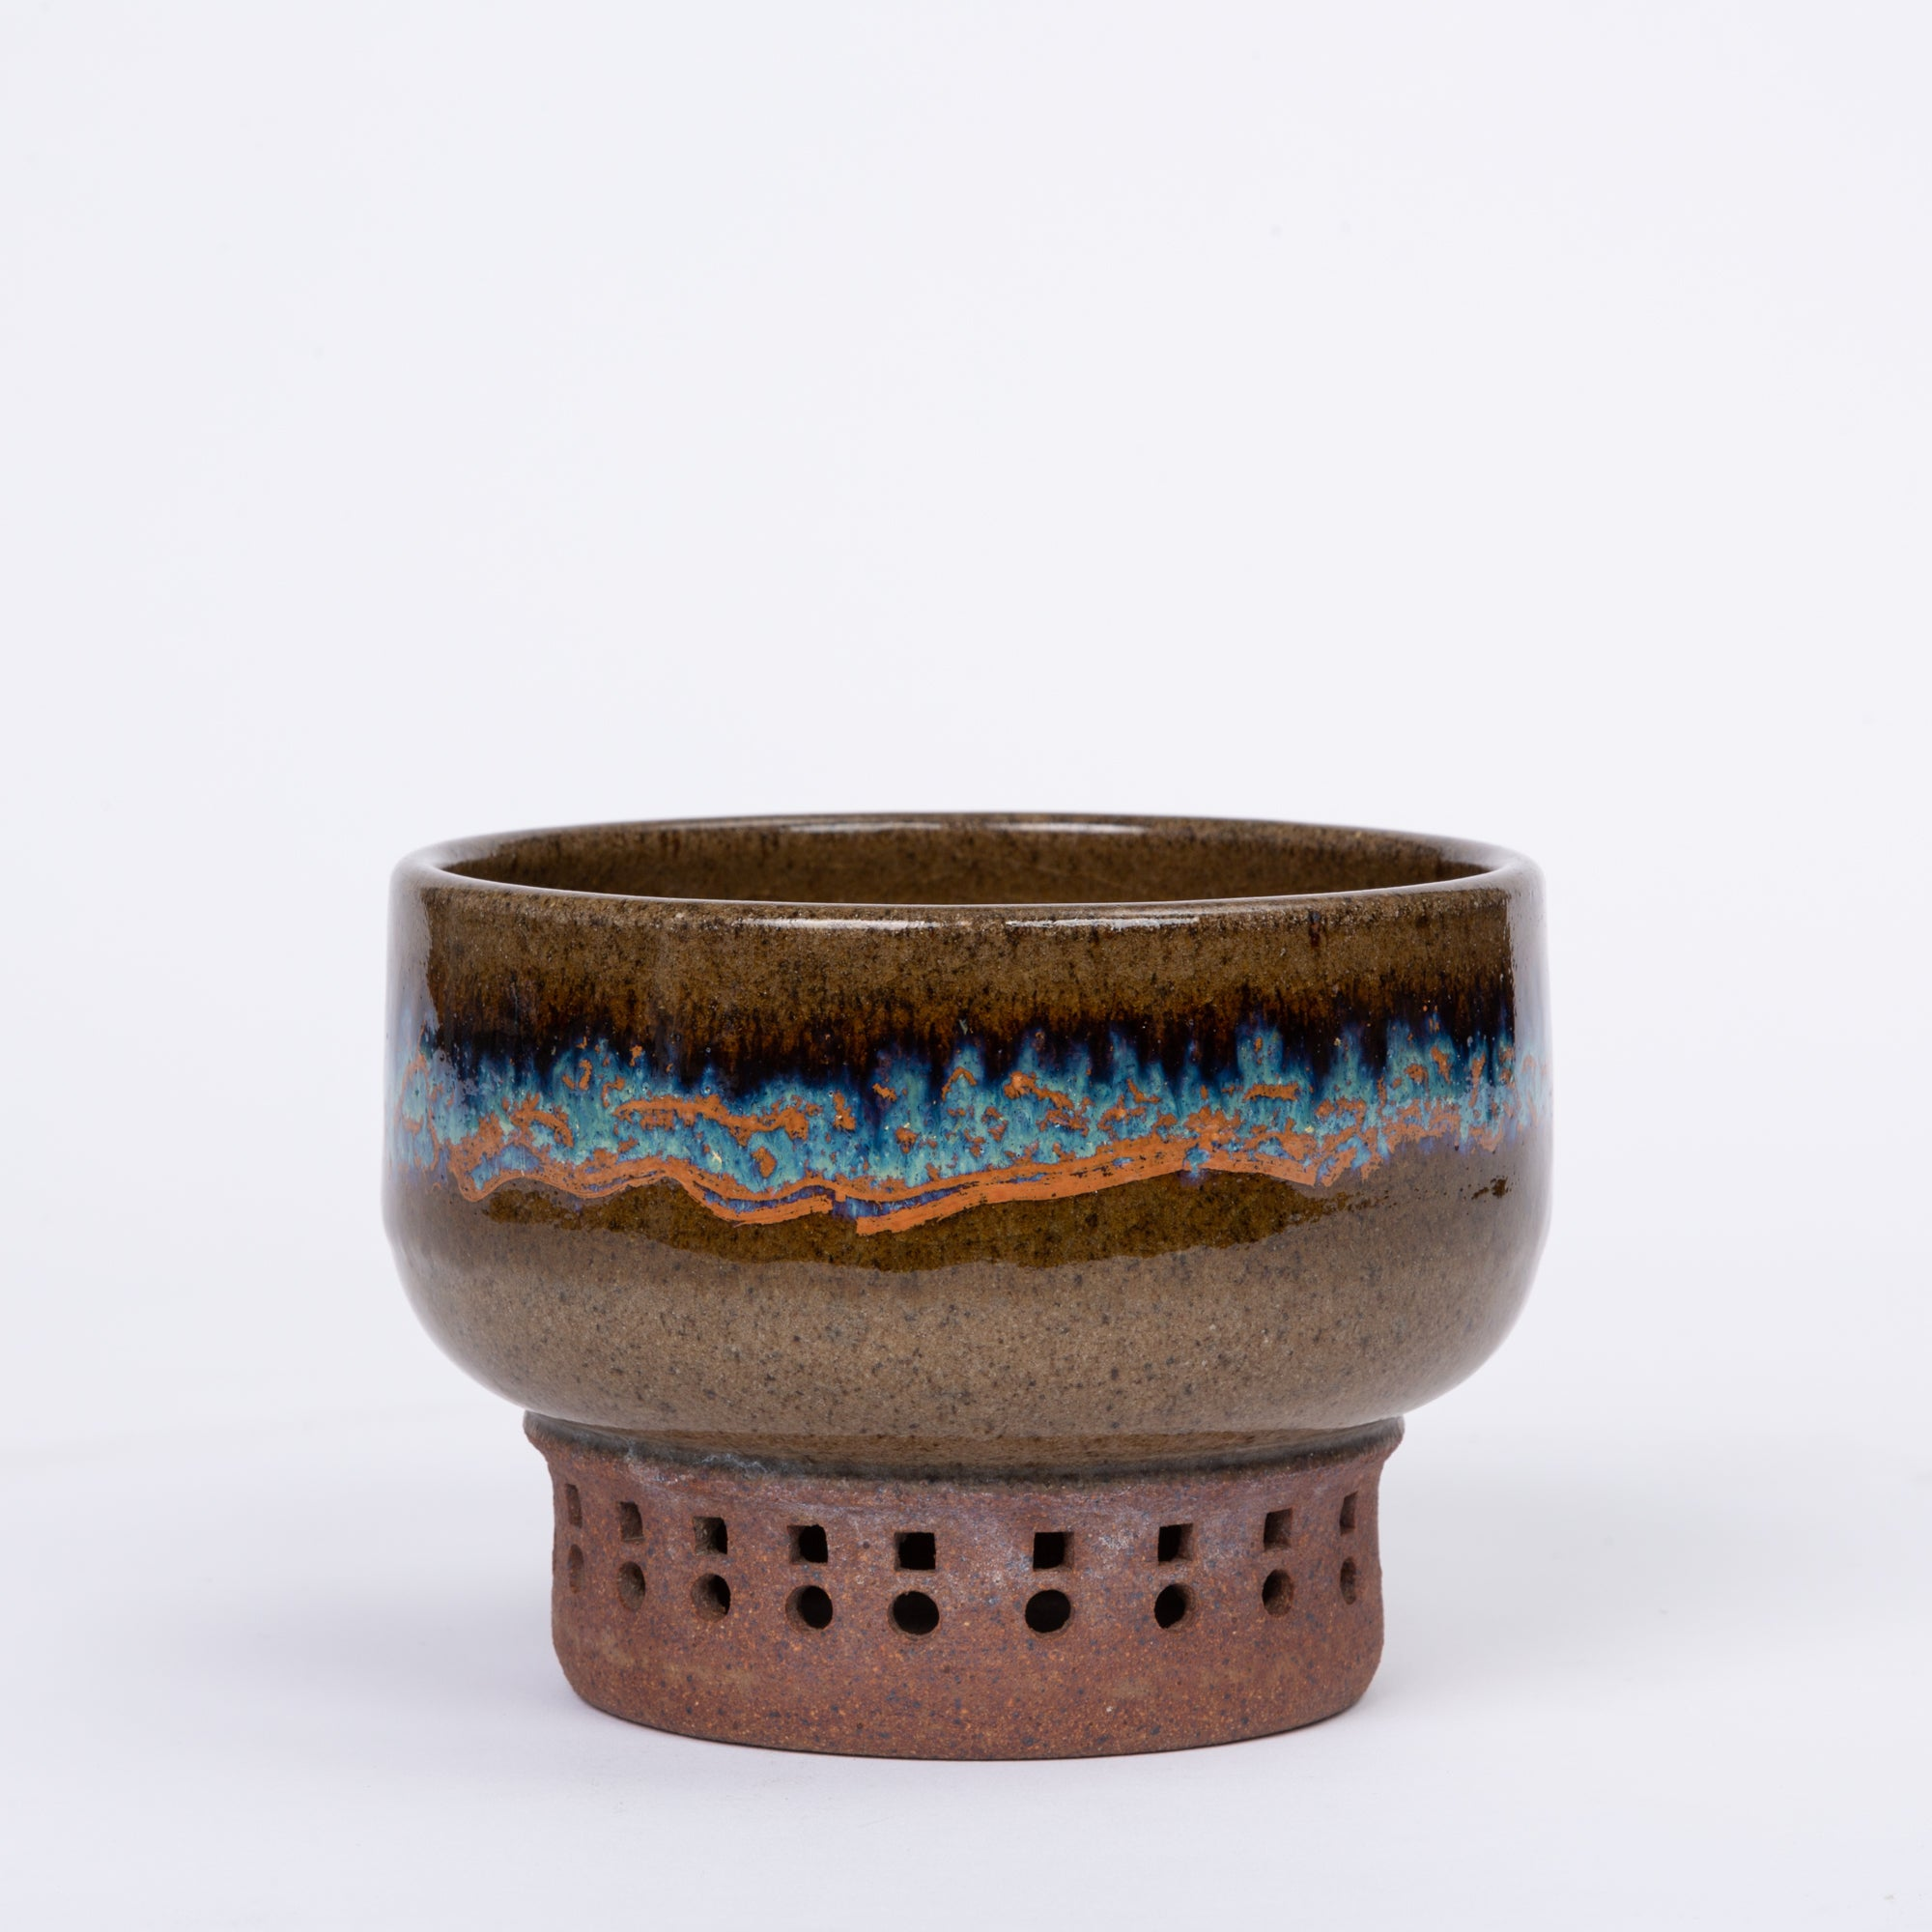 Studio Pottery Stoneware Vessel with Multicolored Glaze